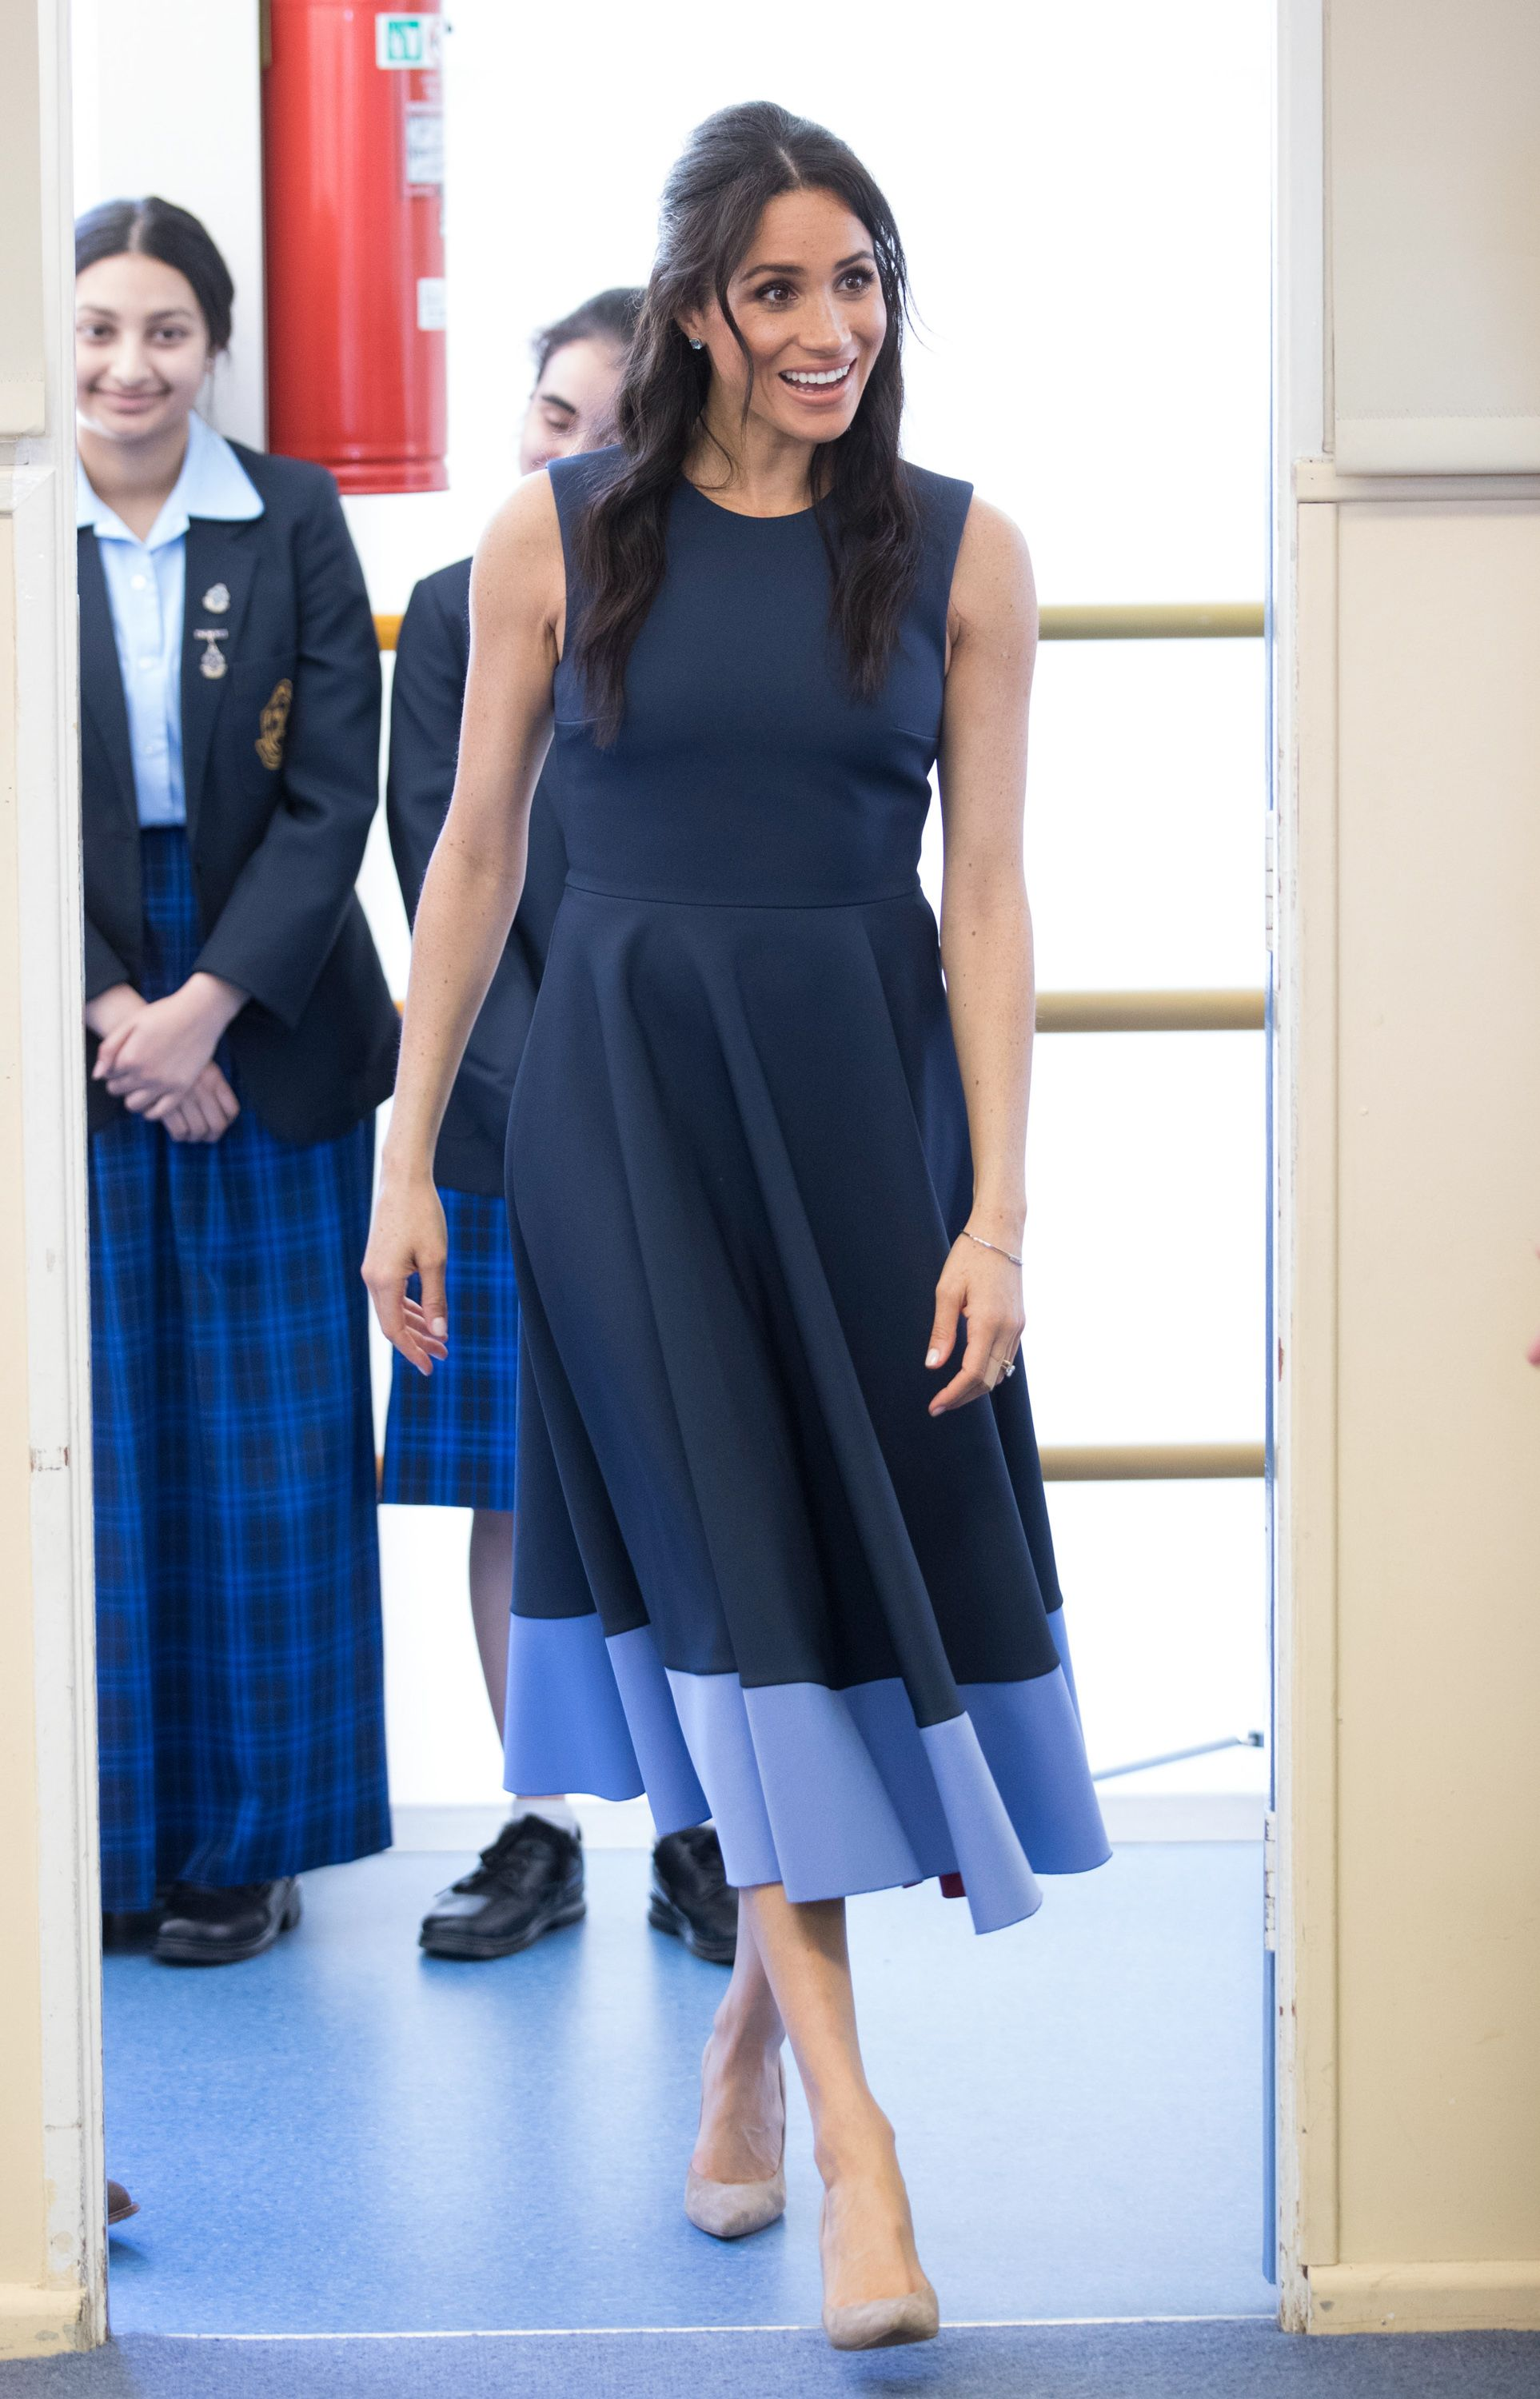 Best Meghan Markle Pregnant Style Looks - Princess Meghan Maternity Fashion 9fd5820d3ebe